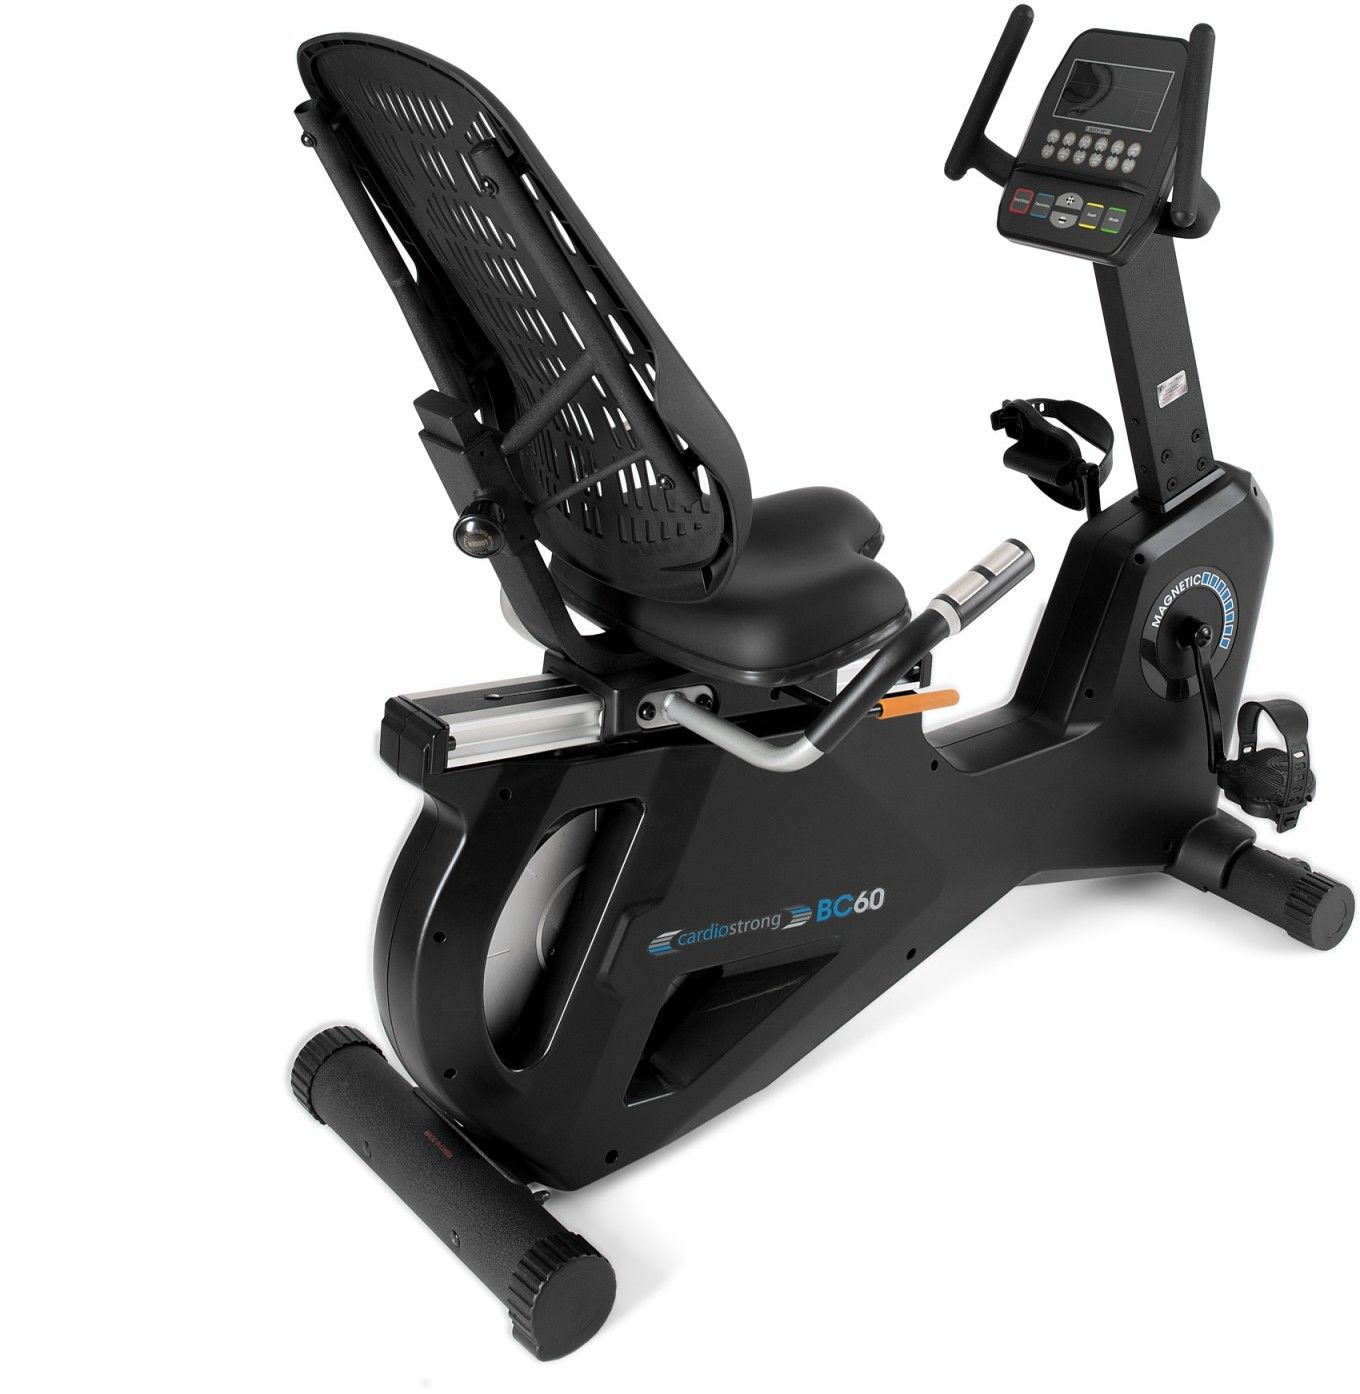 Rower poziomy cardiostrong BC60